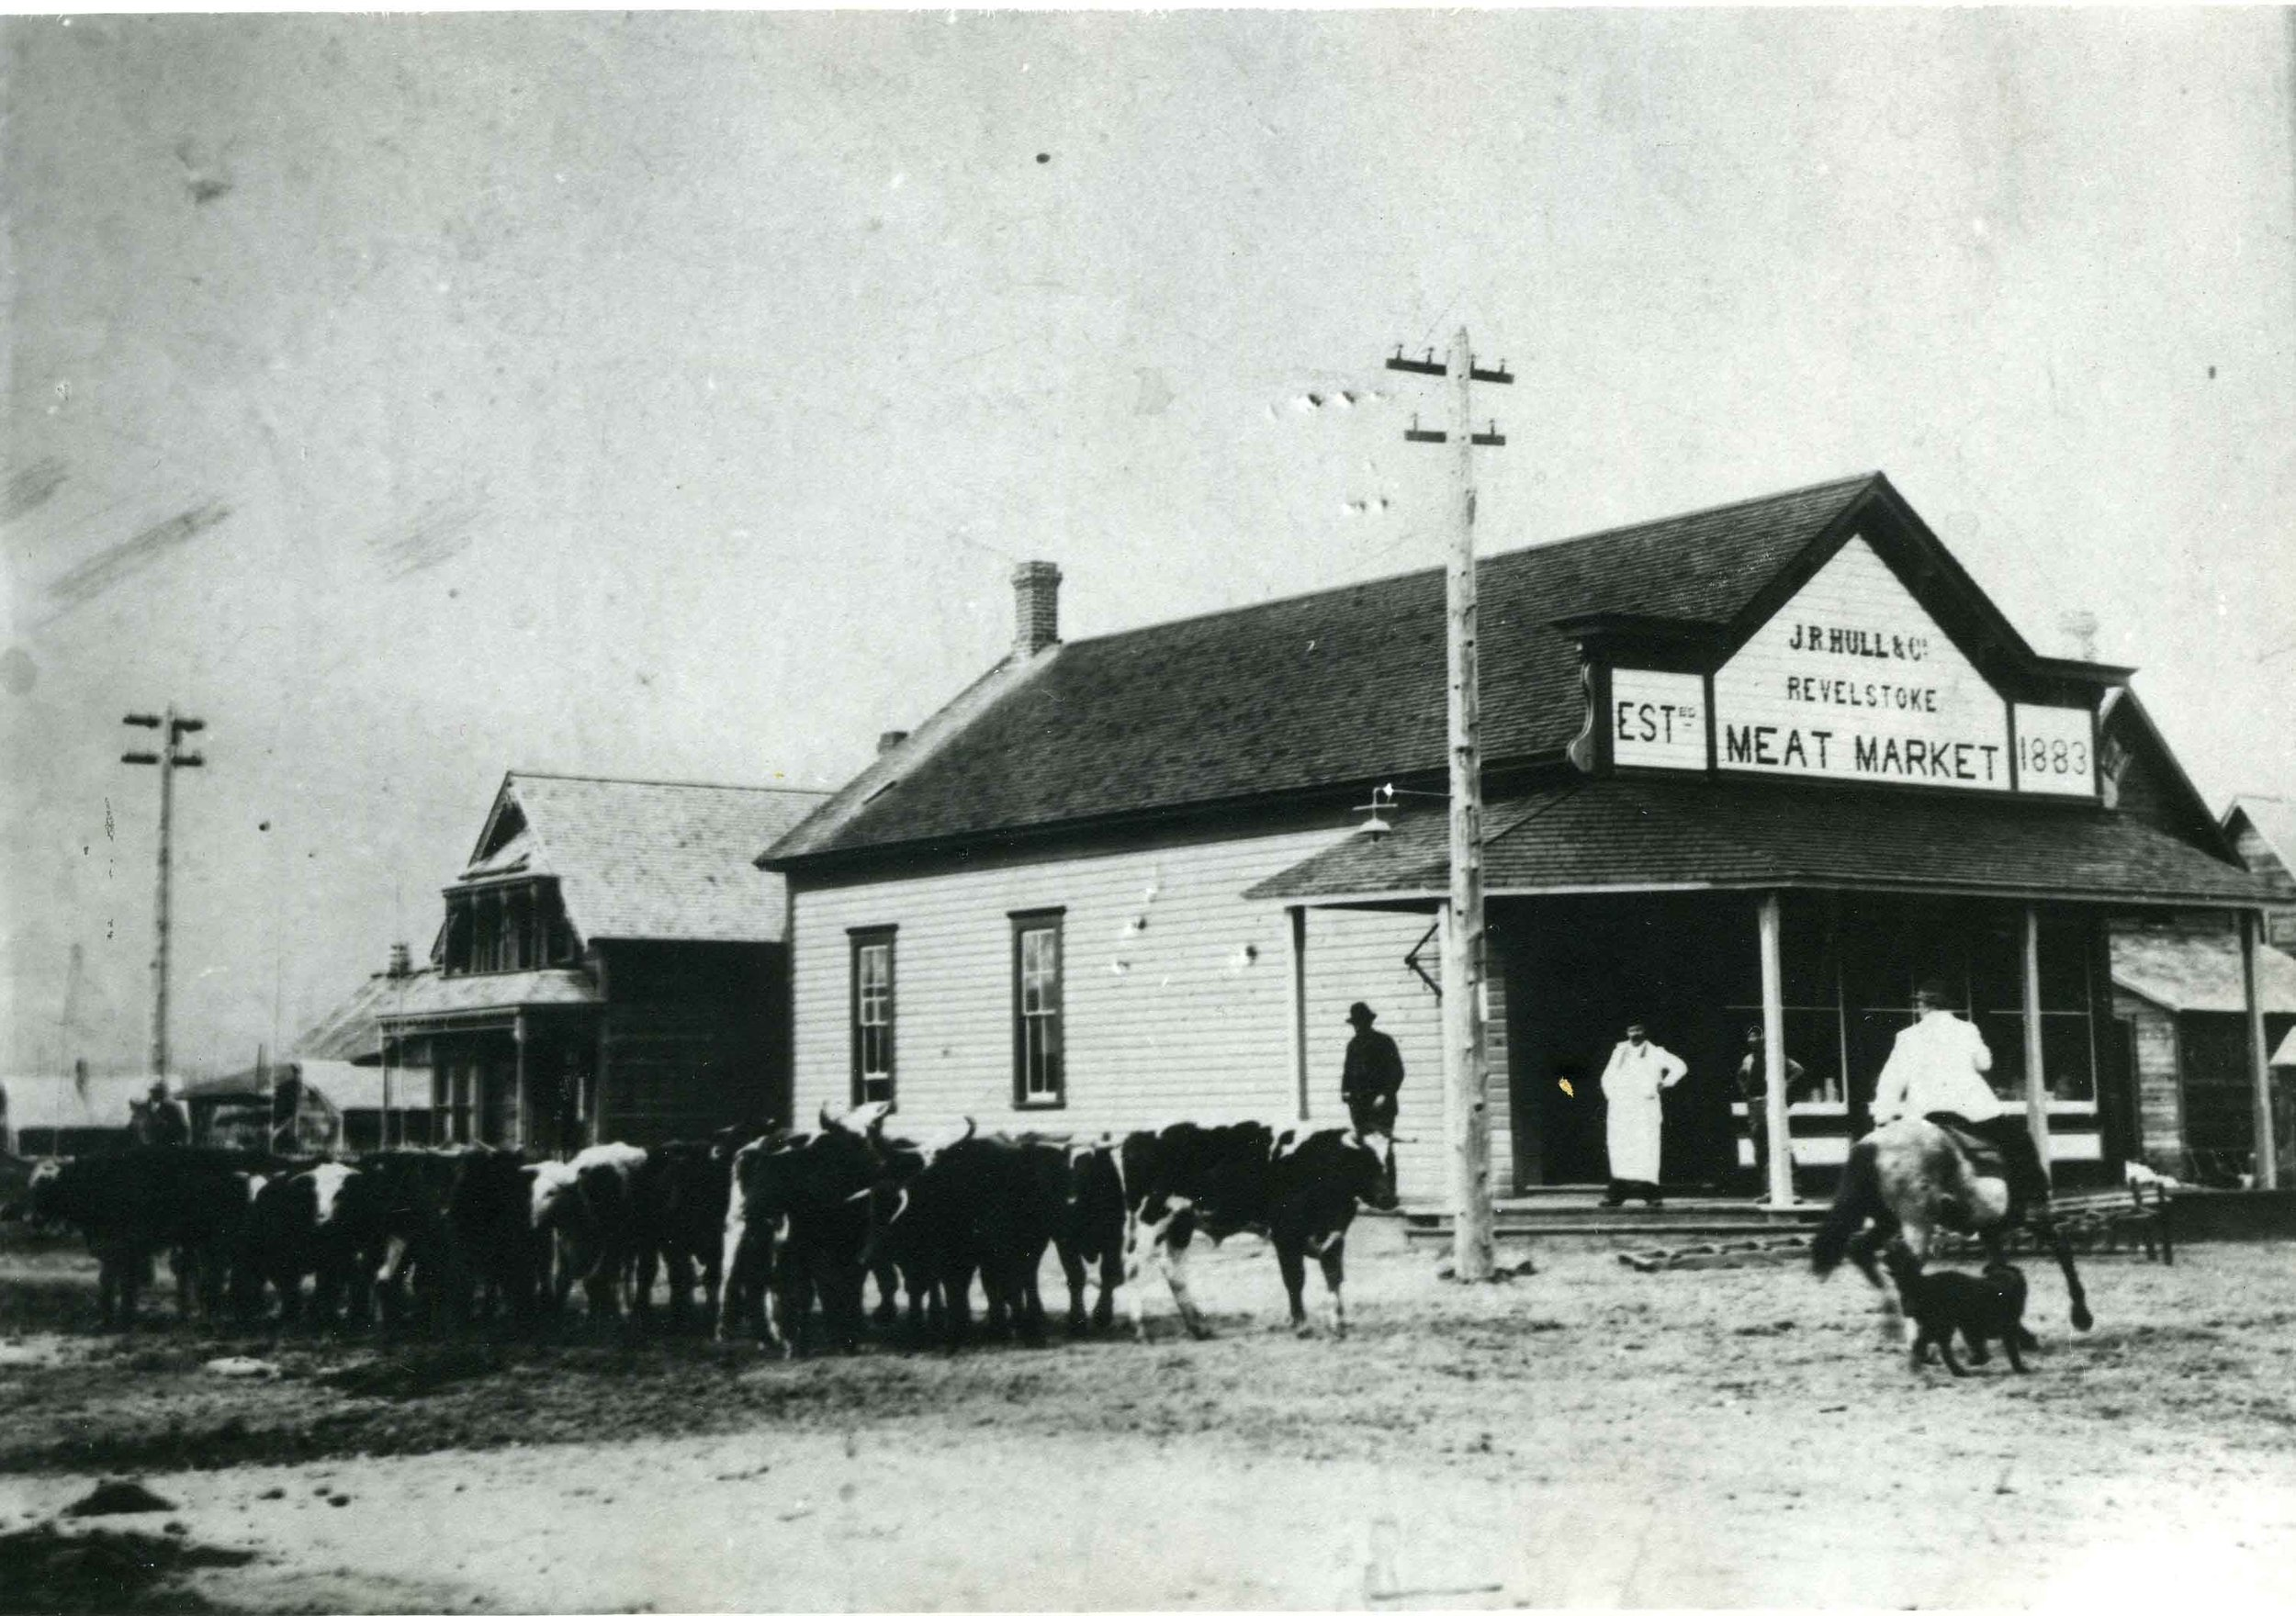 J.R. Hull & Co. Meat Market and Abrahamson home, c.1900